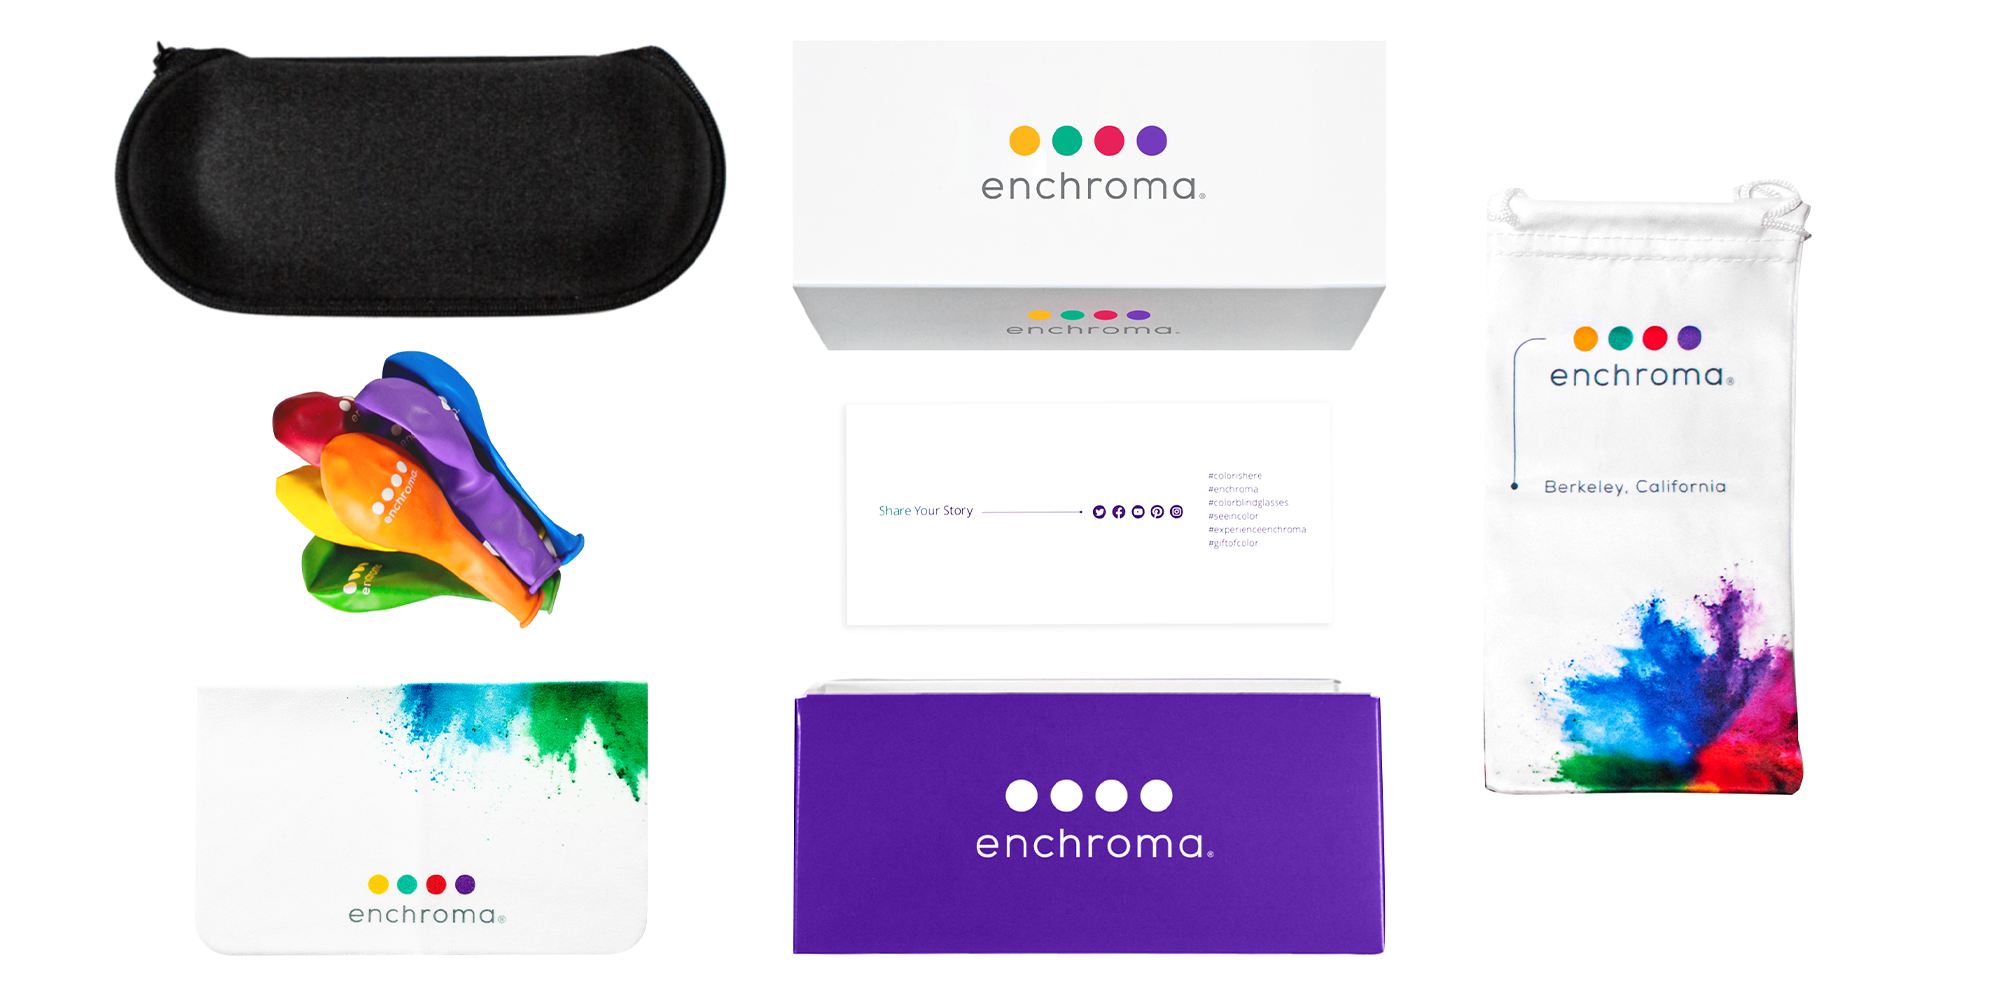 What is inside the EnChroma Box